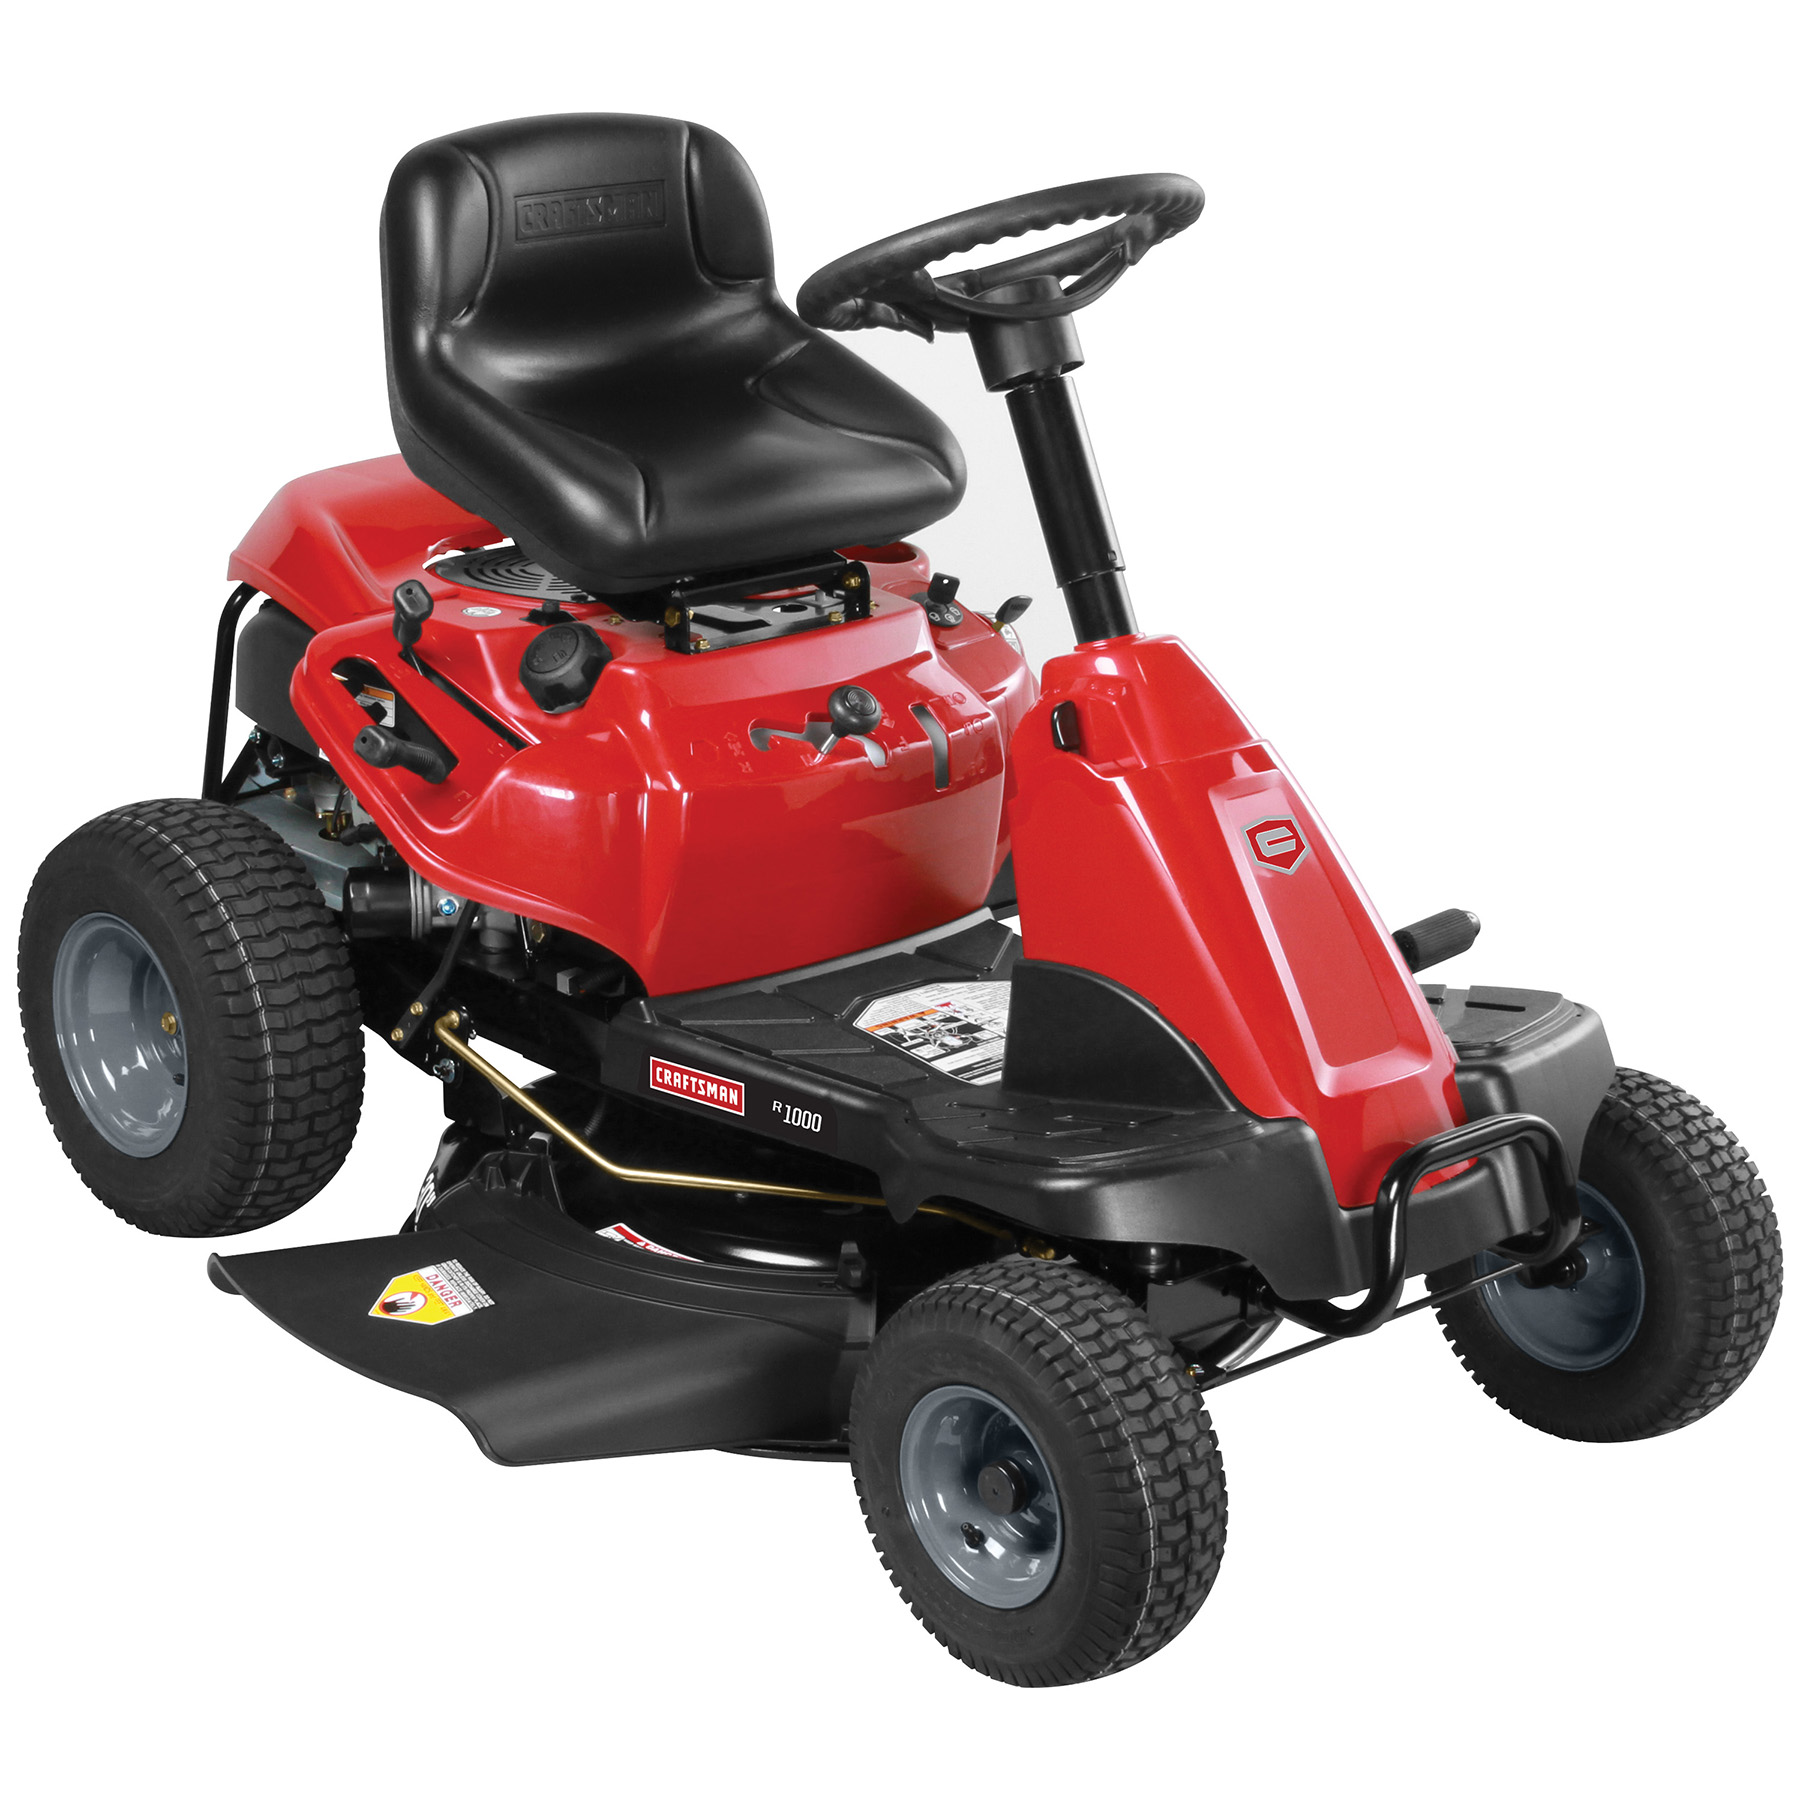 Snapper Snow Blower With Headlight